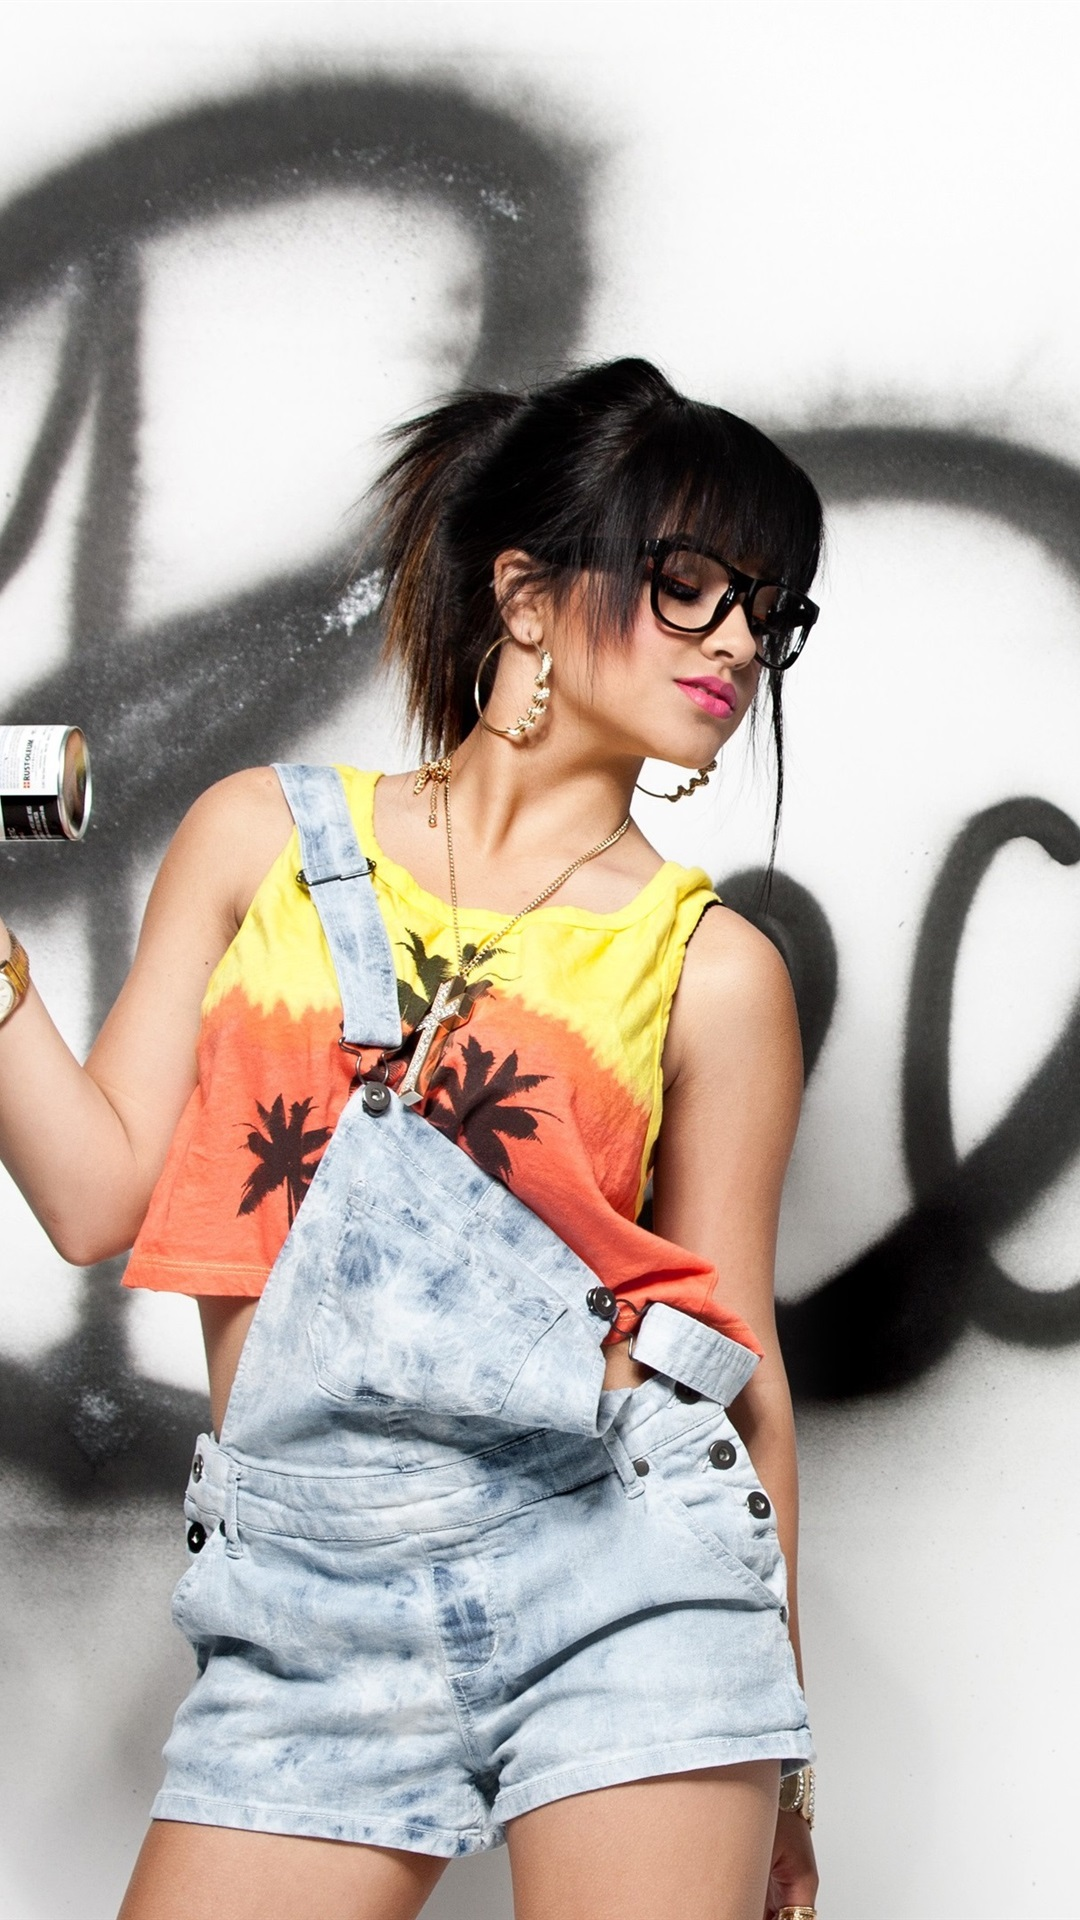 Becky G 01 1080x1920 Iphone 8 7 6 6s Plus Wallpaper Background Picture Image